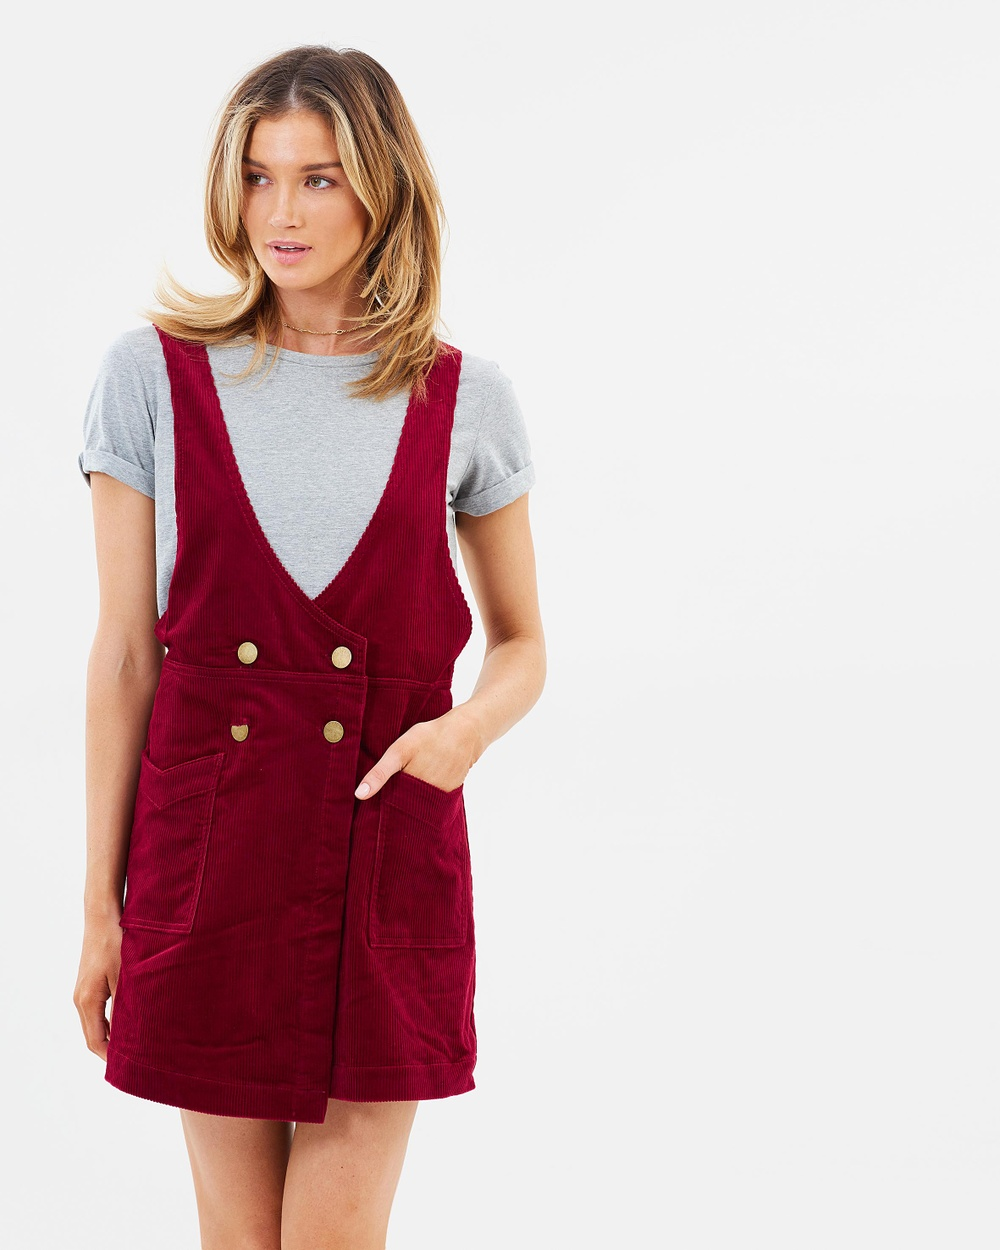 Free People Canyonlands Cord Dress Dresses Red Canyonlands Cord Dress